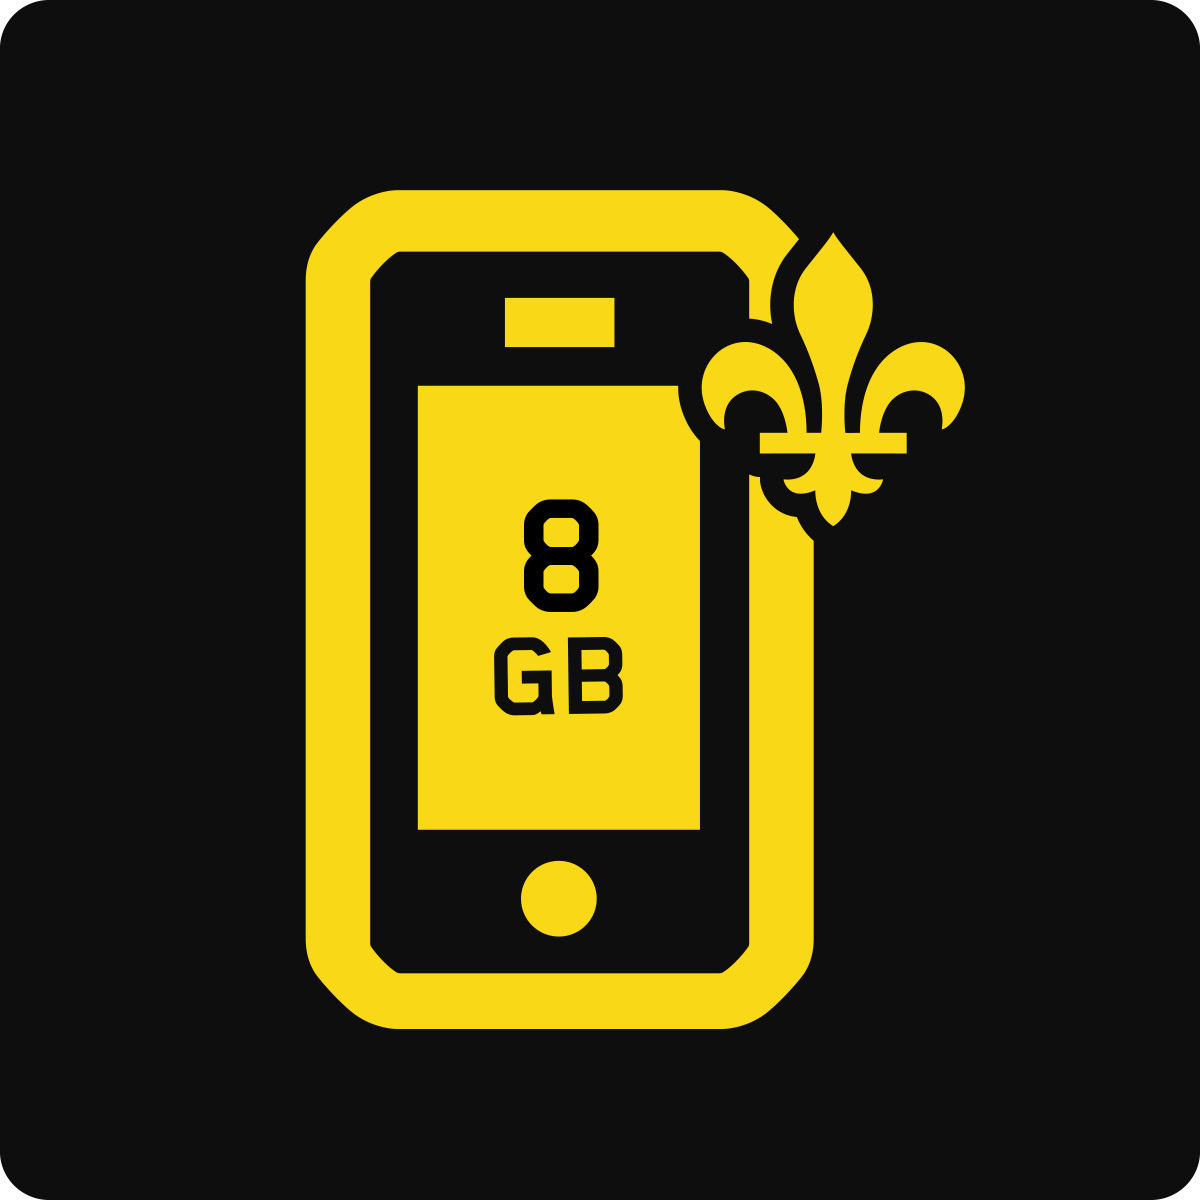 Quebec 8 GB Business Mobile plan